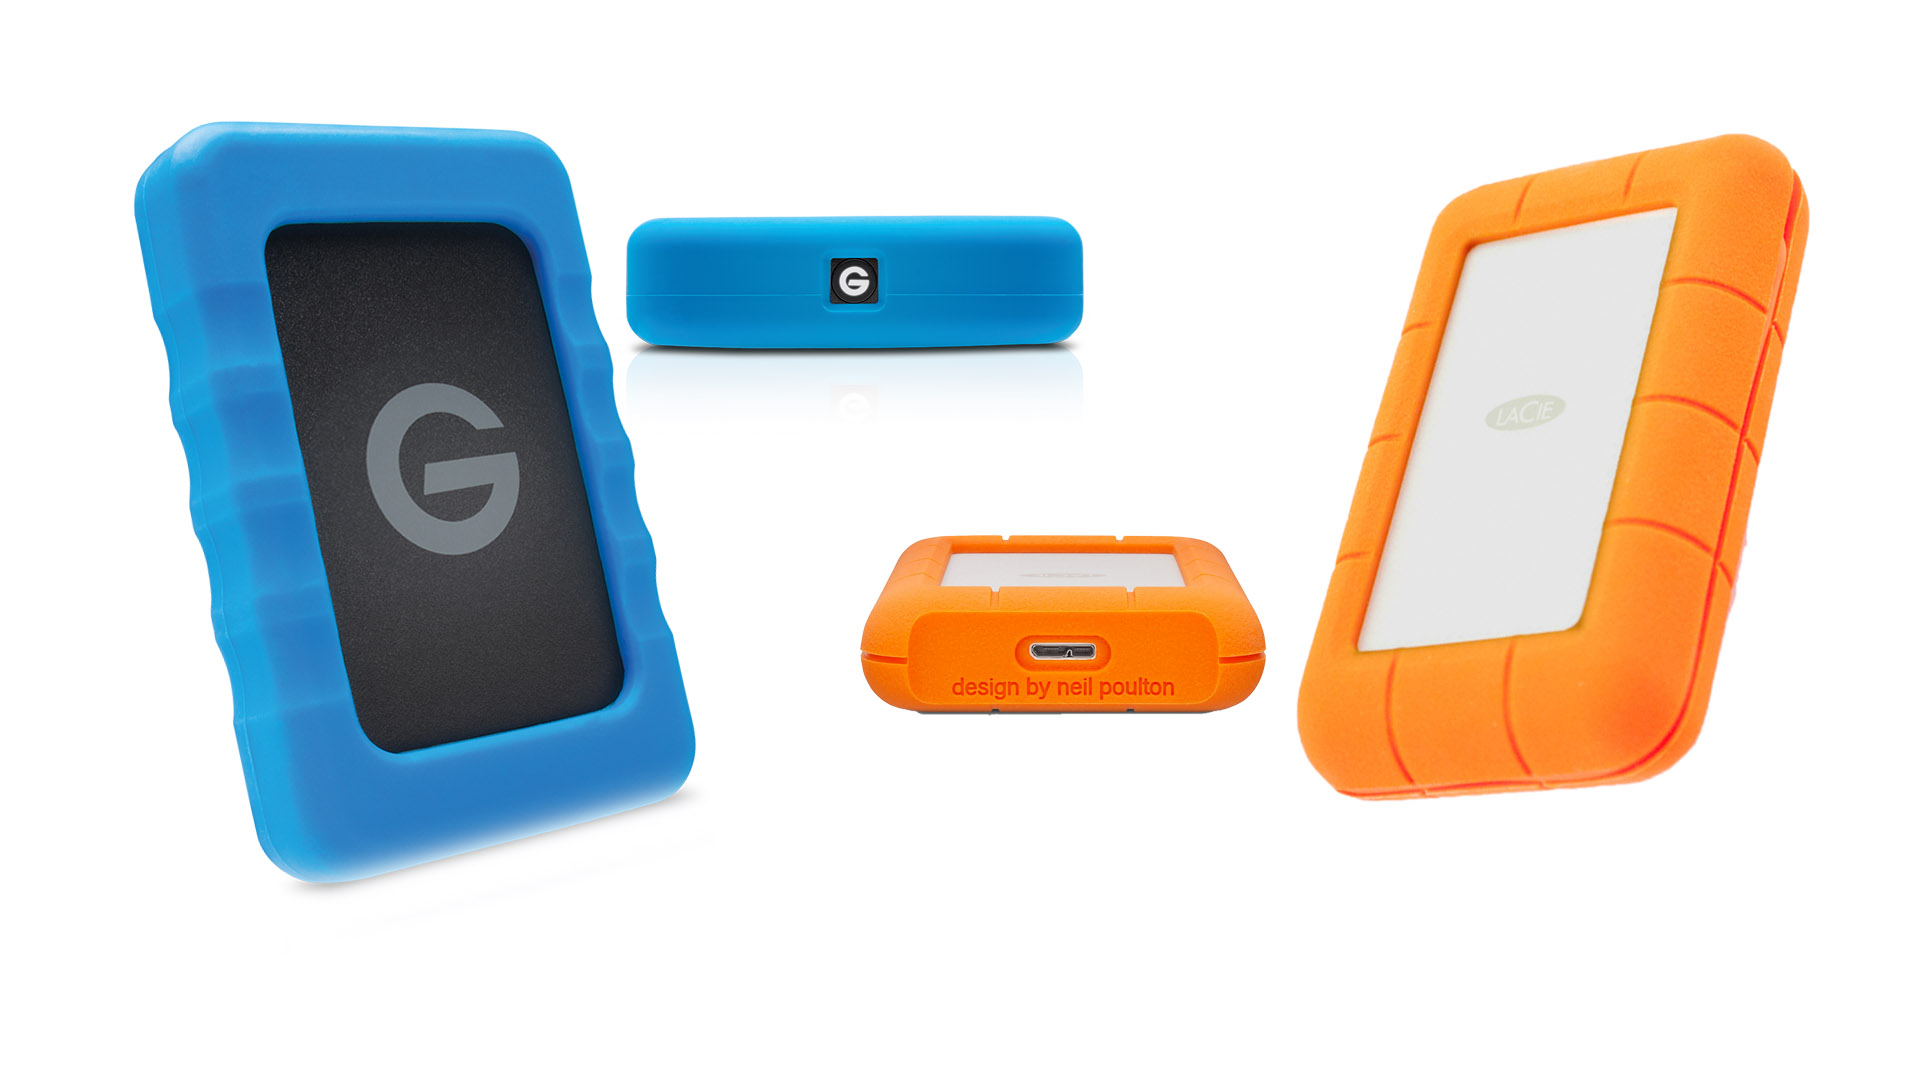 4 terabyte single enclosure portable hard drives can pose a danger to your data.